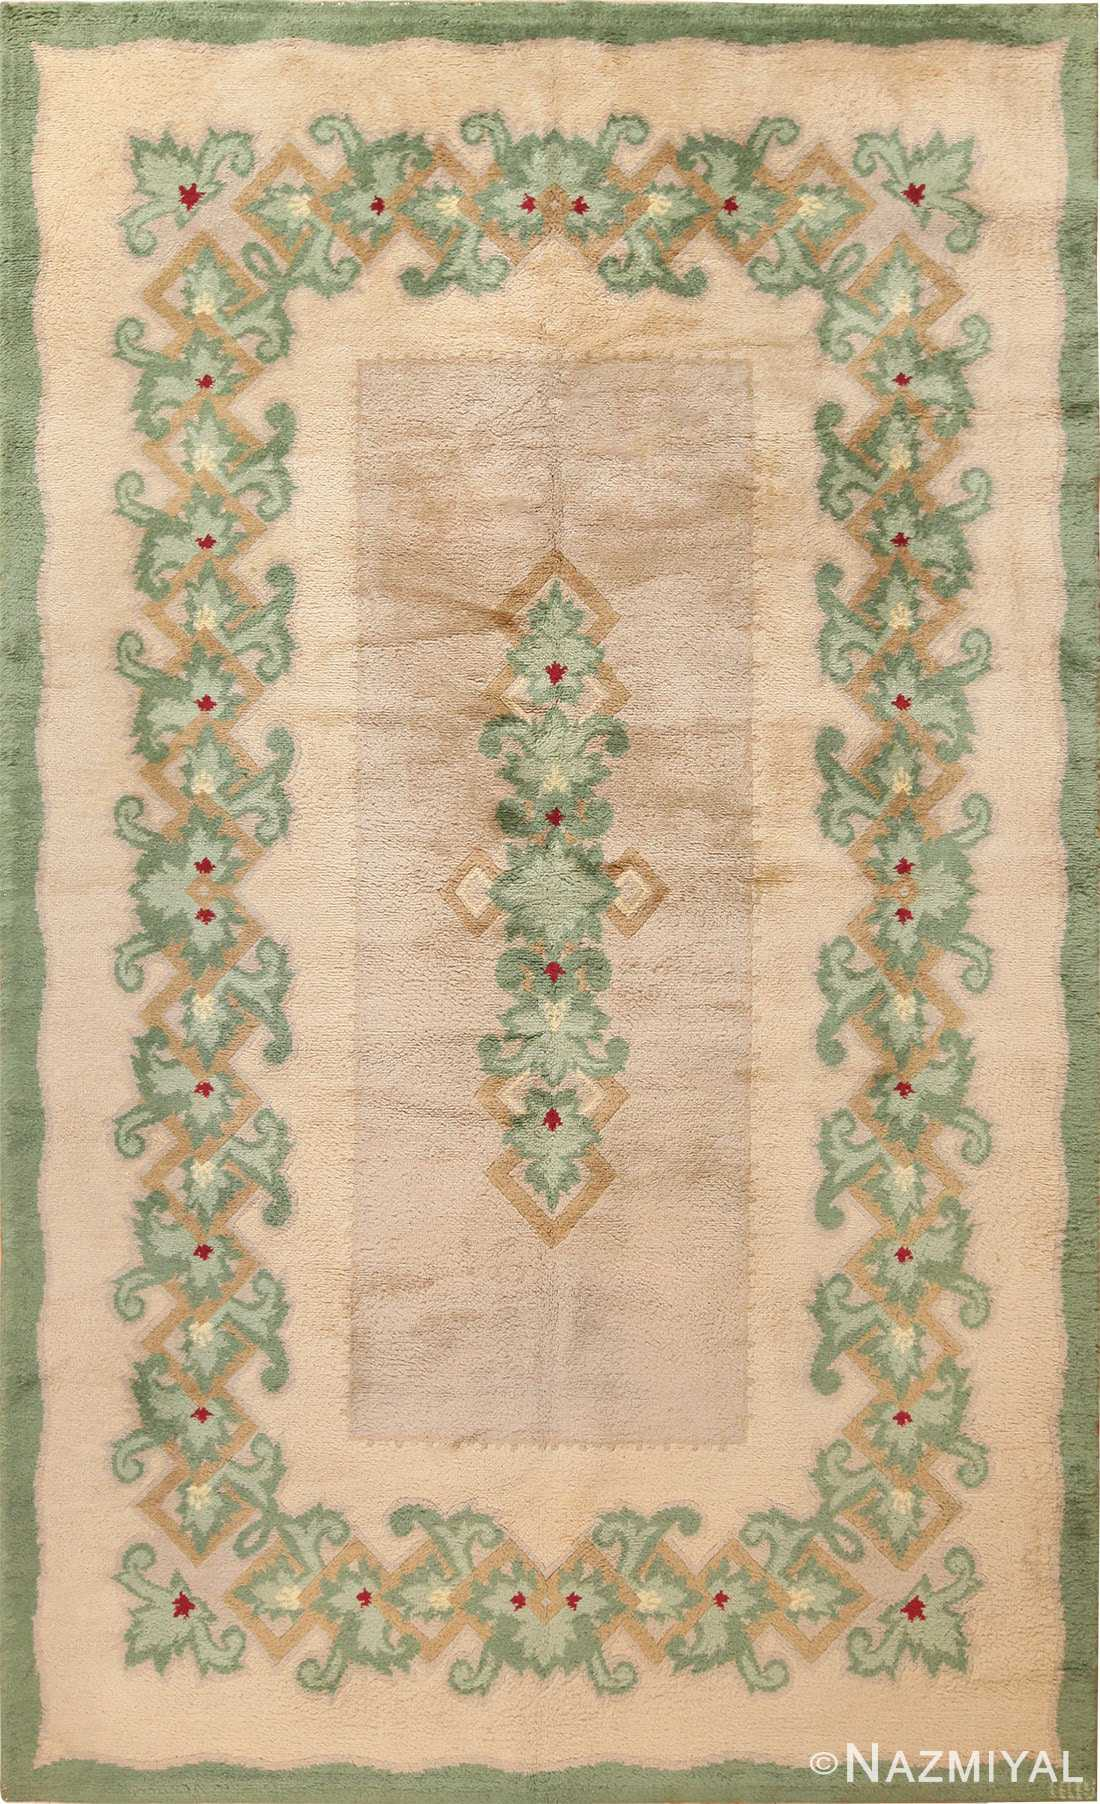 Full view Antique Green French Art Deco rug 70152 designed by Leleu from the Nazmiyal collection in NYC.